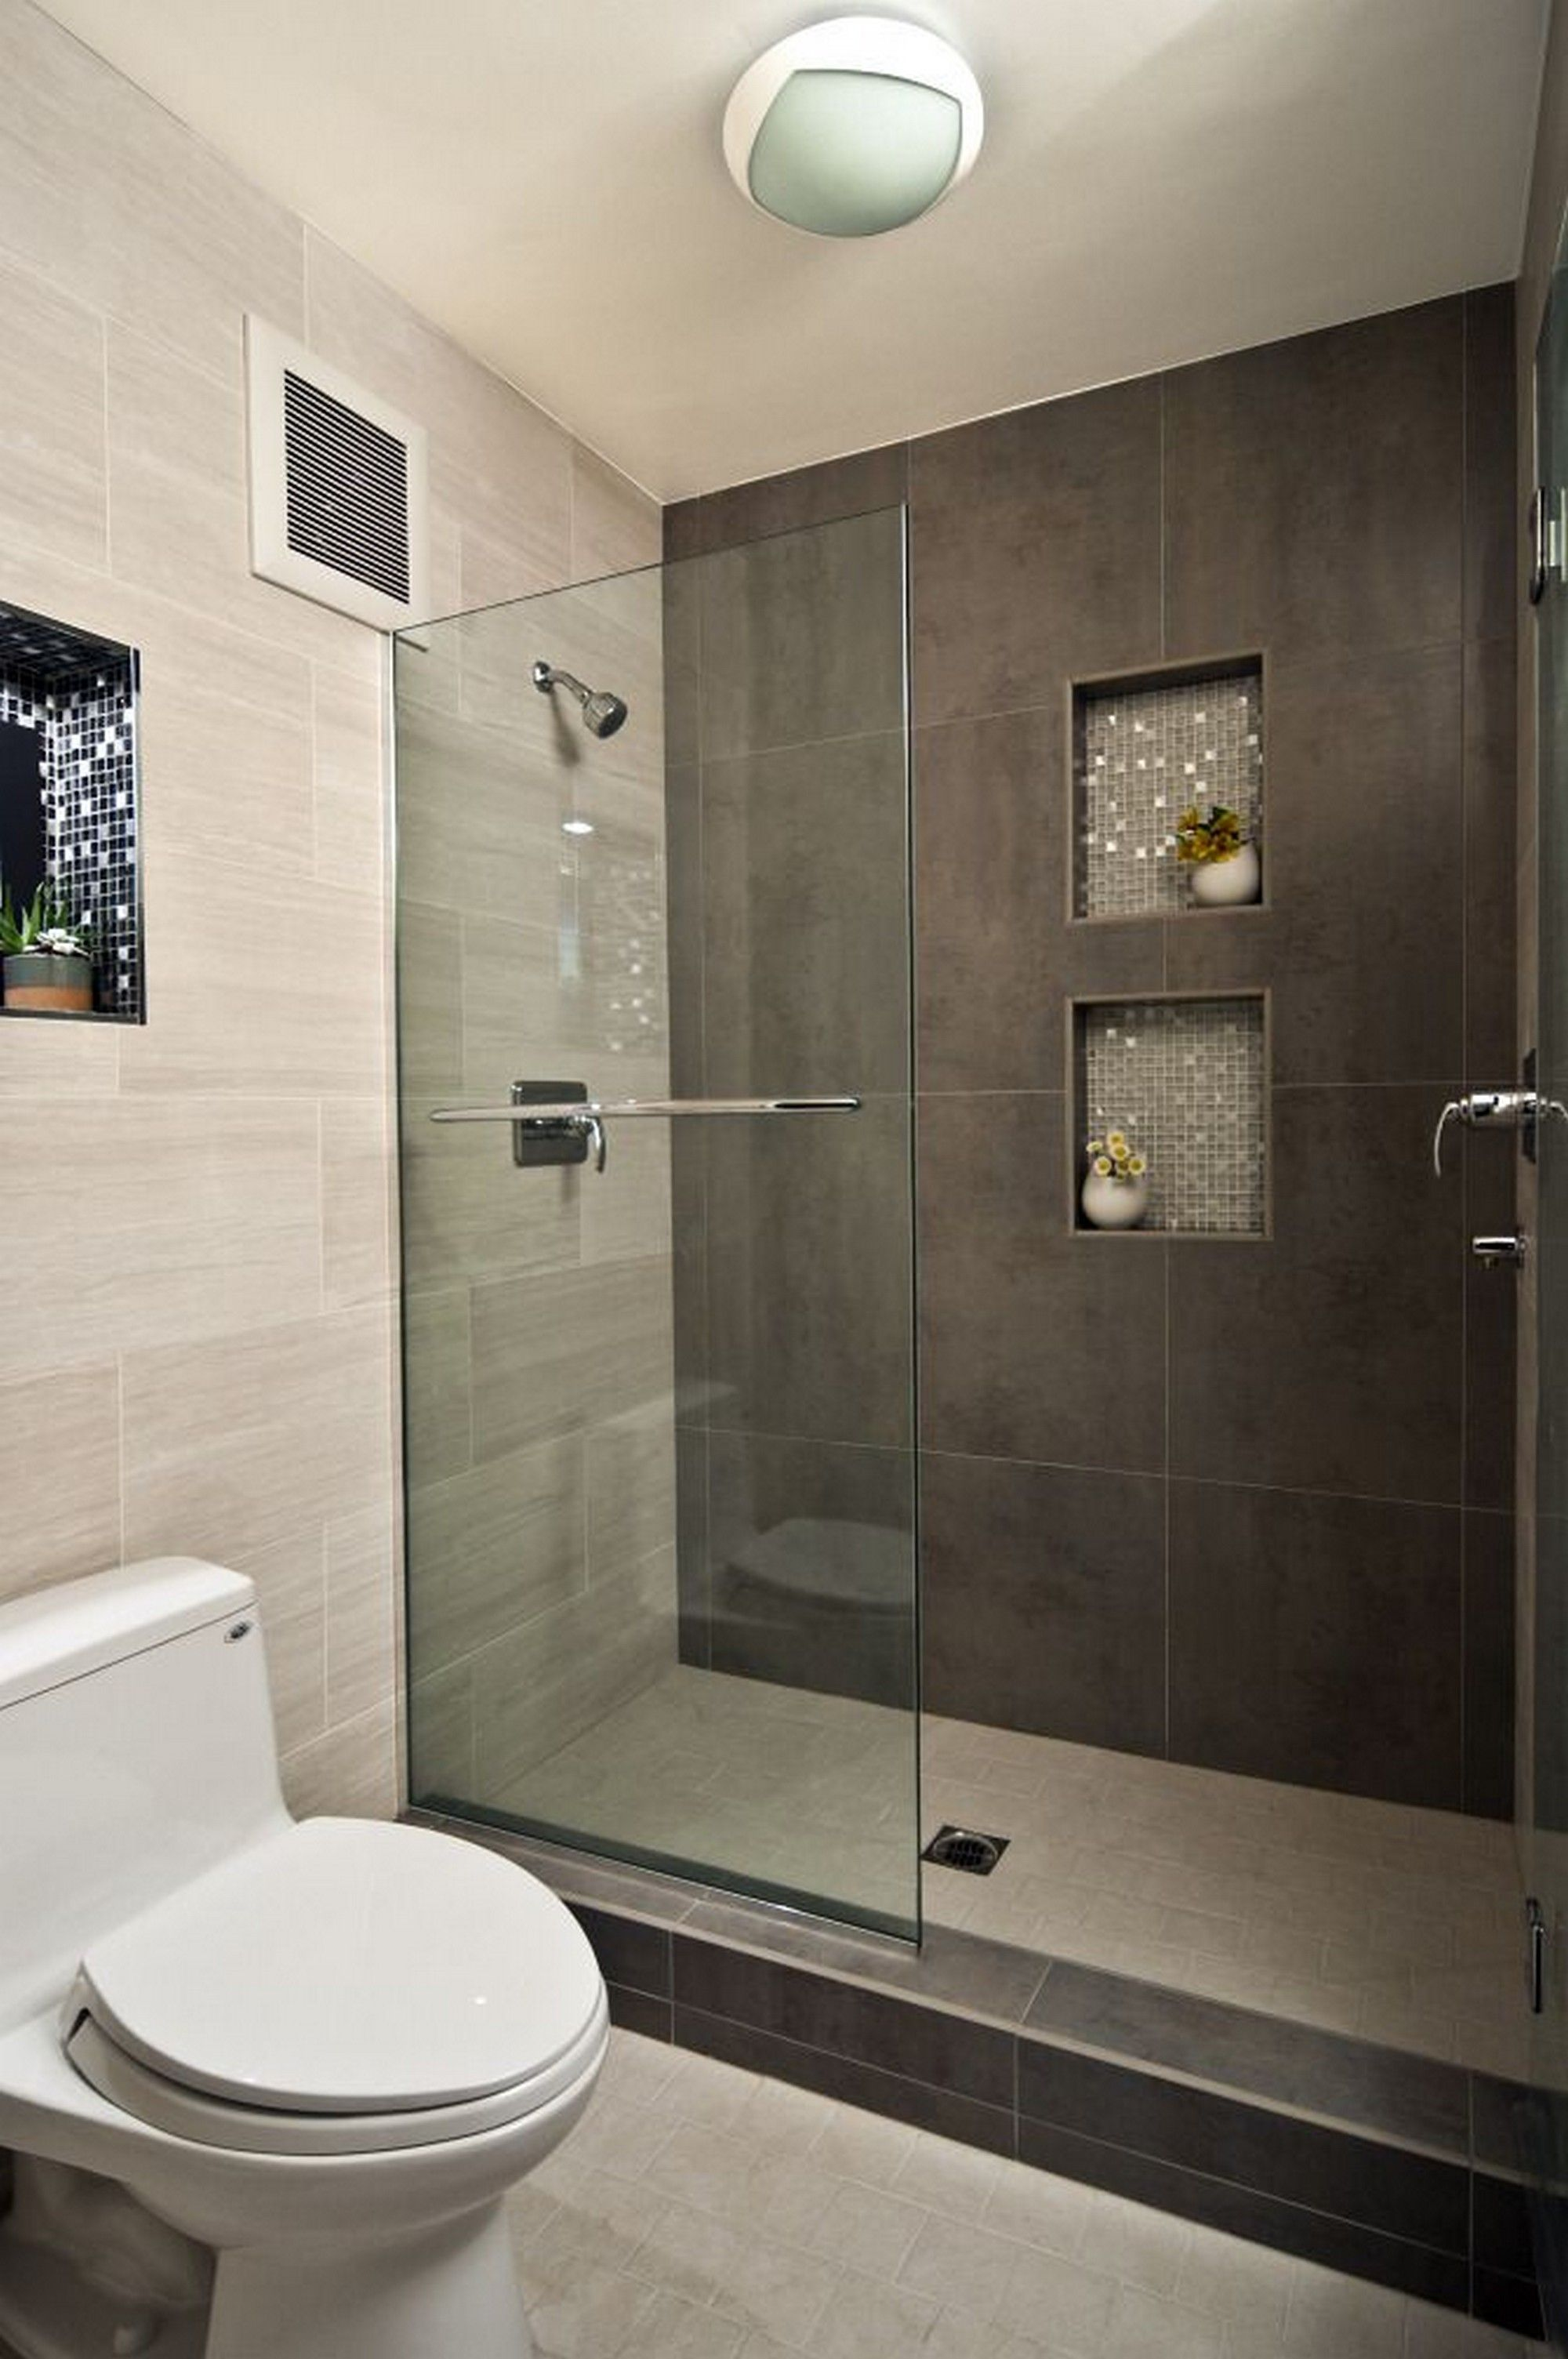 Modern bathroom design ideas with walk in shower small for Design my bathroom remodel